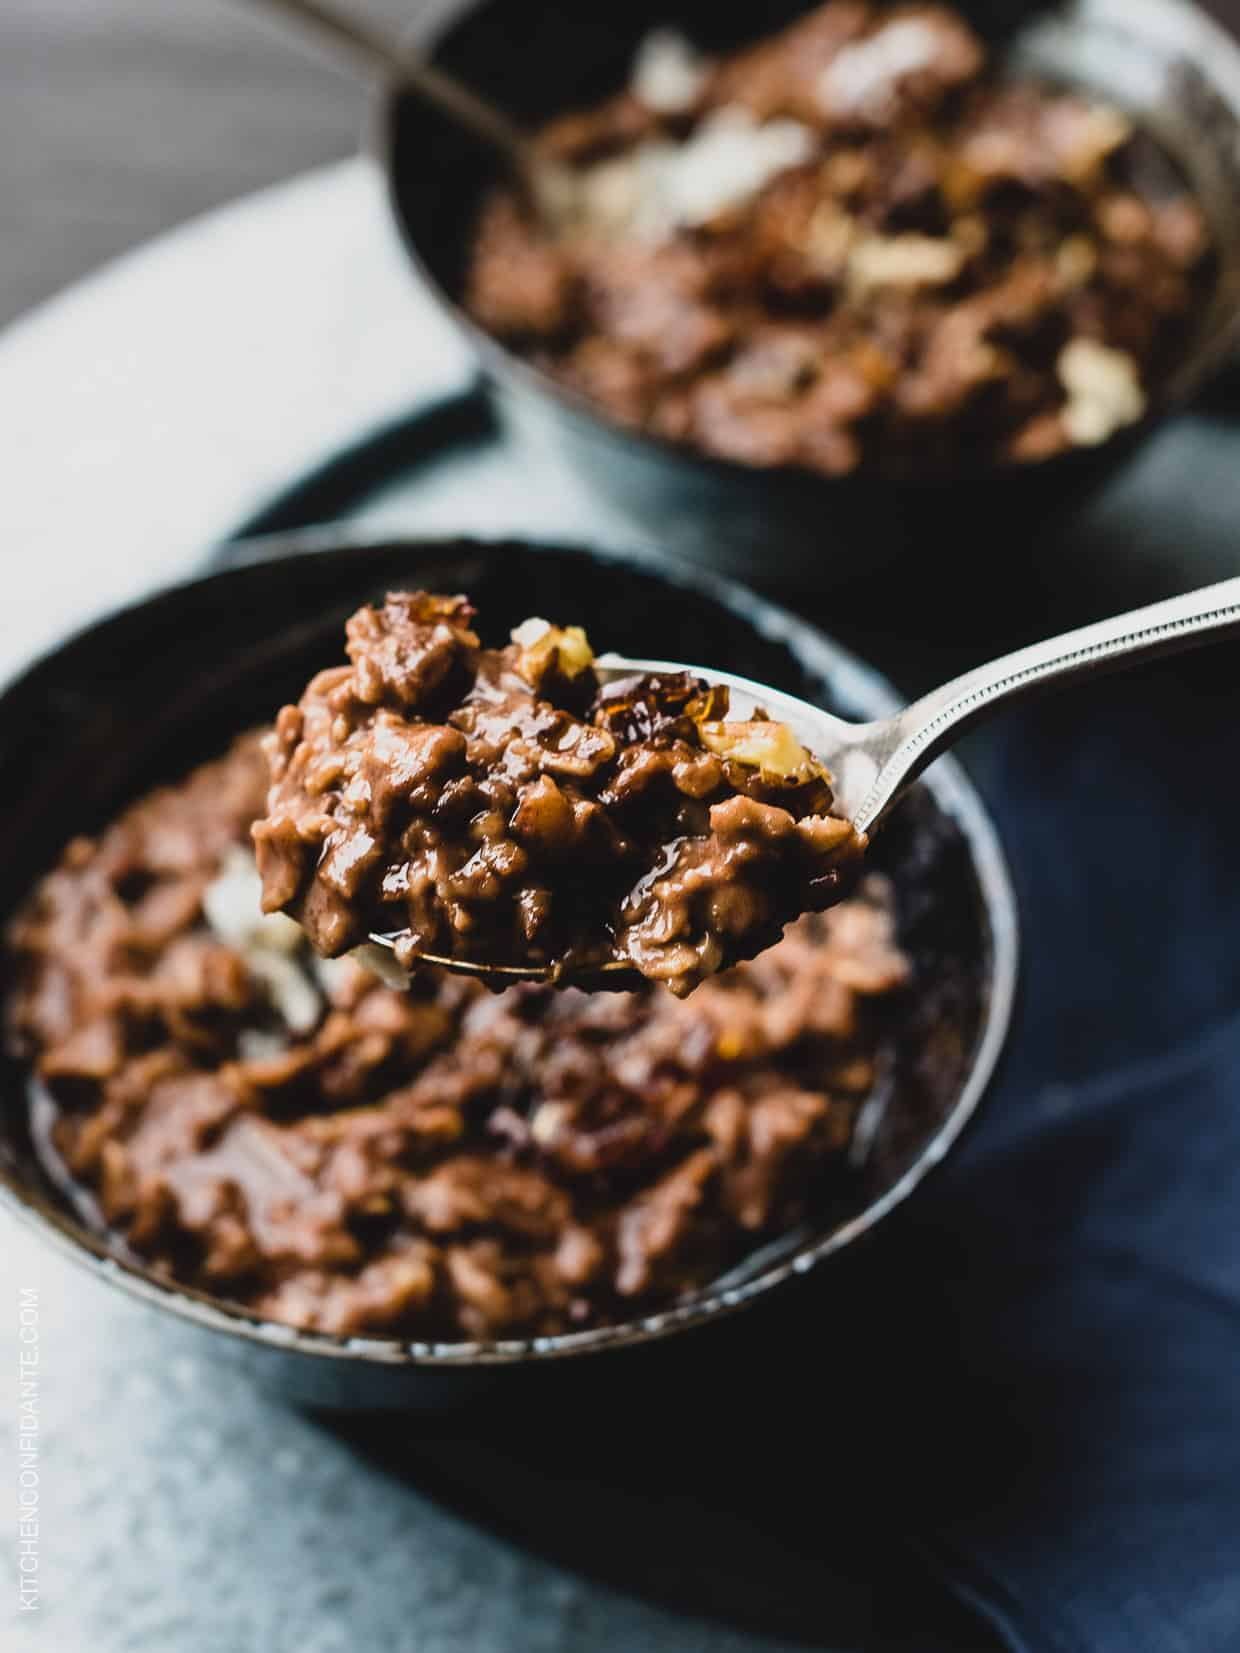 A closeup view of a spoonful of wholesome and delicious Chocolate Coconut Oat Porridge.